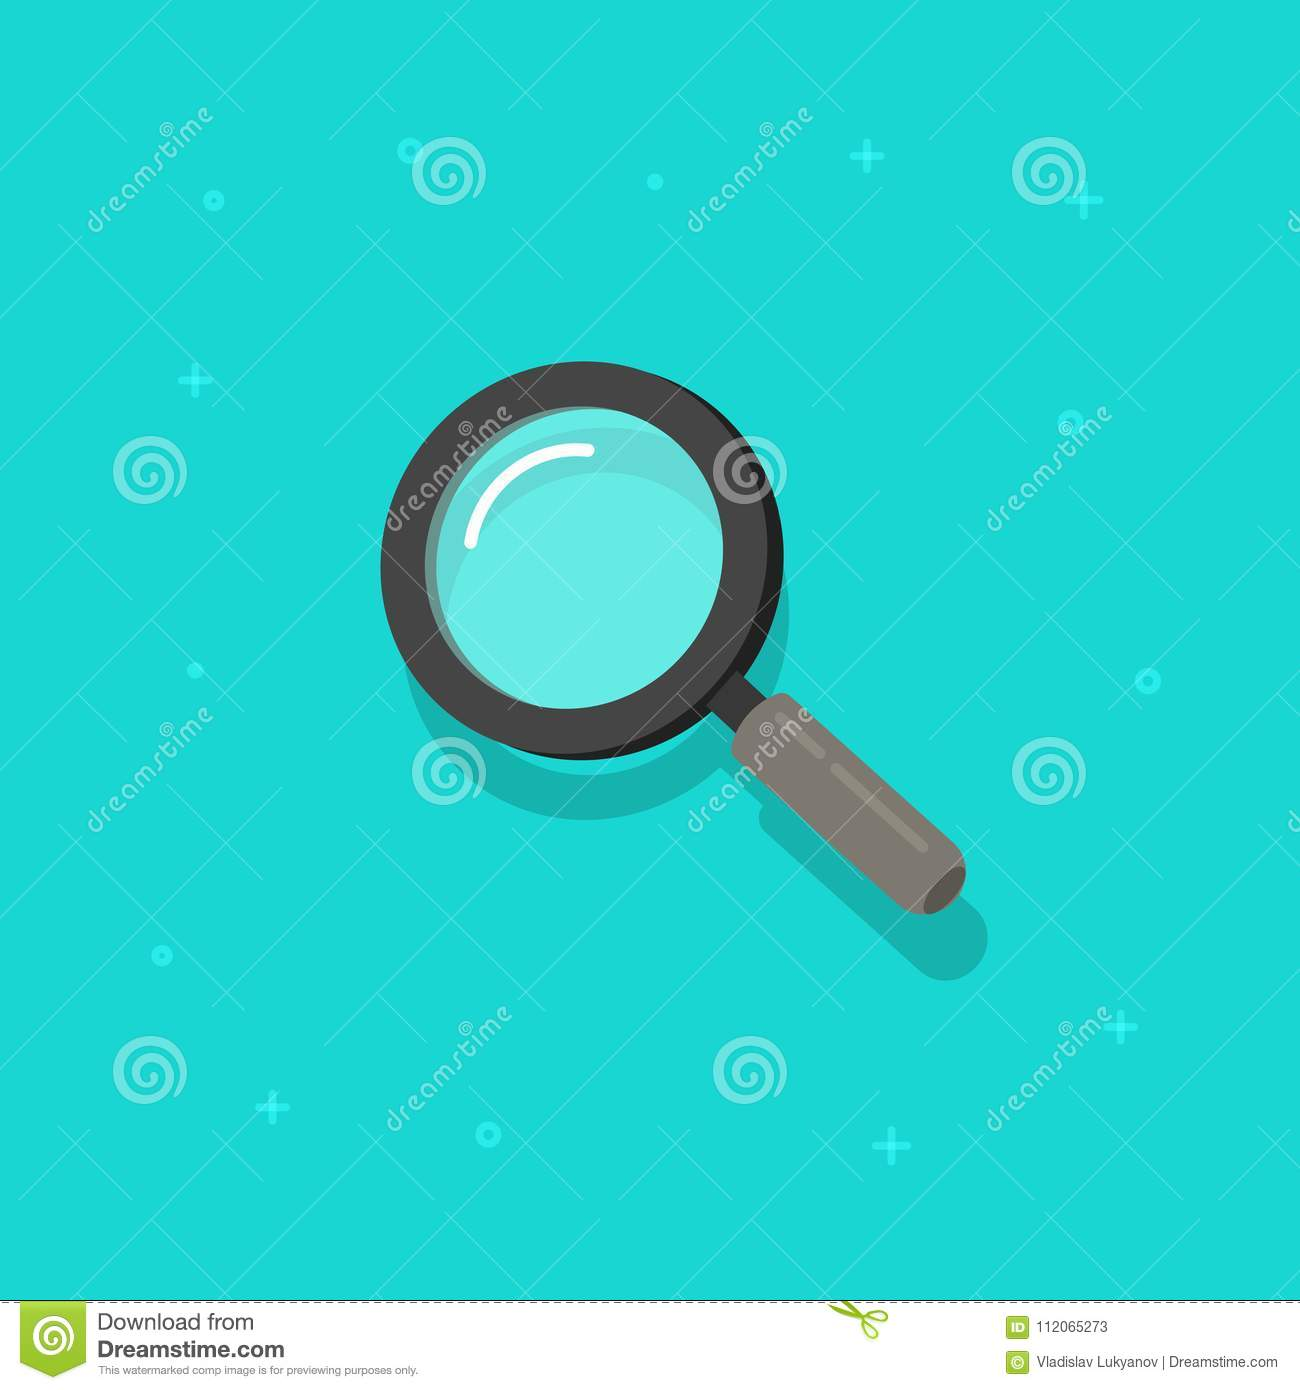 hight resolution of magnifying glass vector icon flat cartoon magnifier or loupe symbol isolated clipart